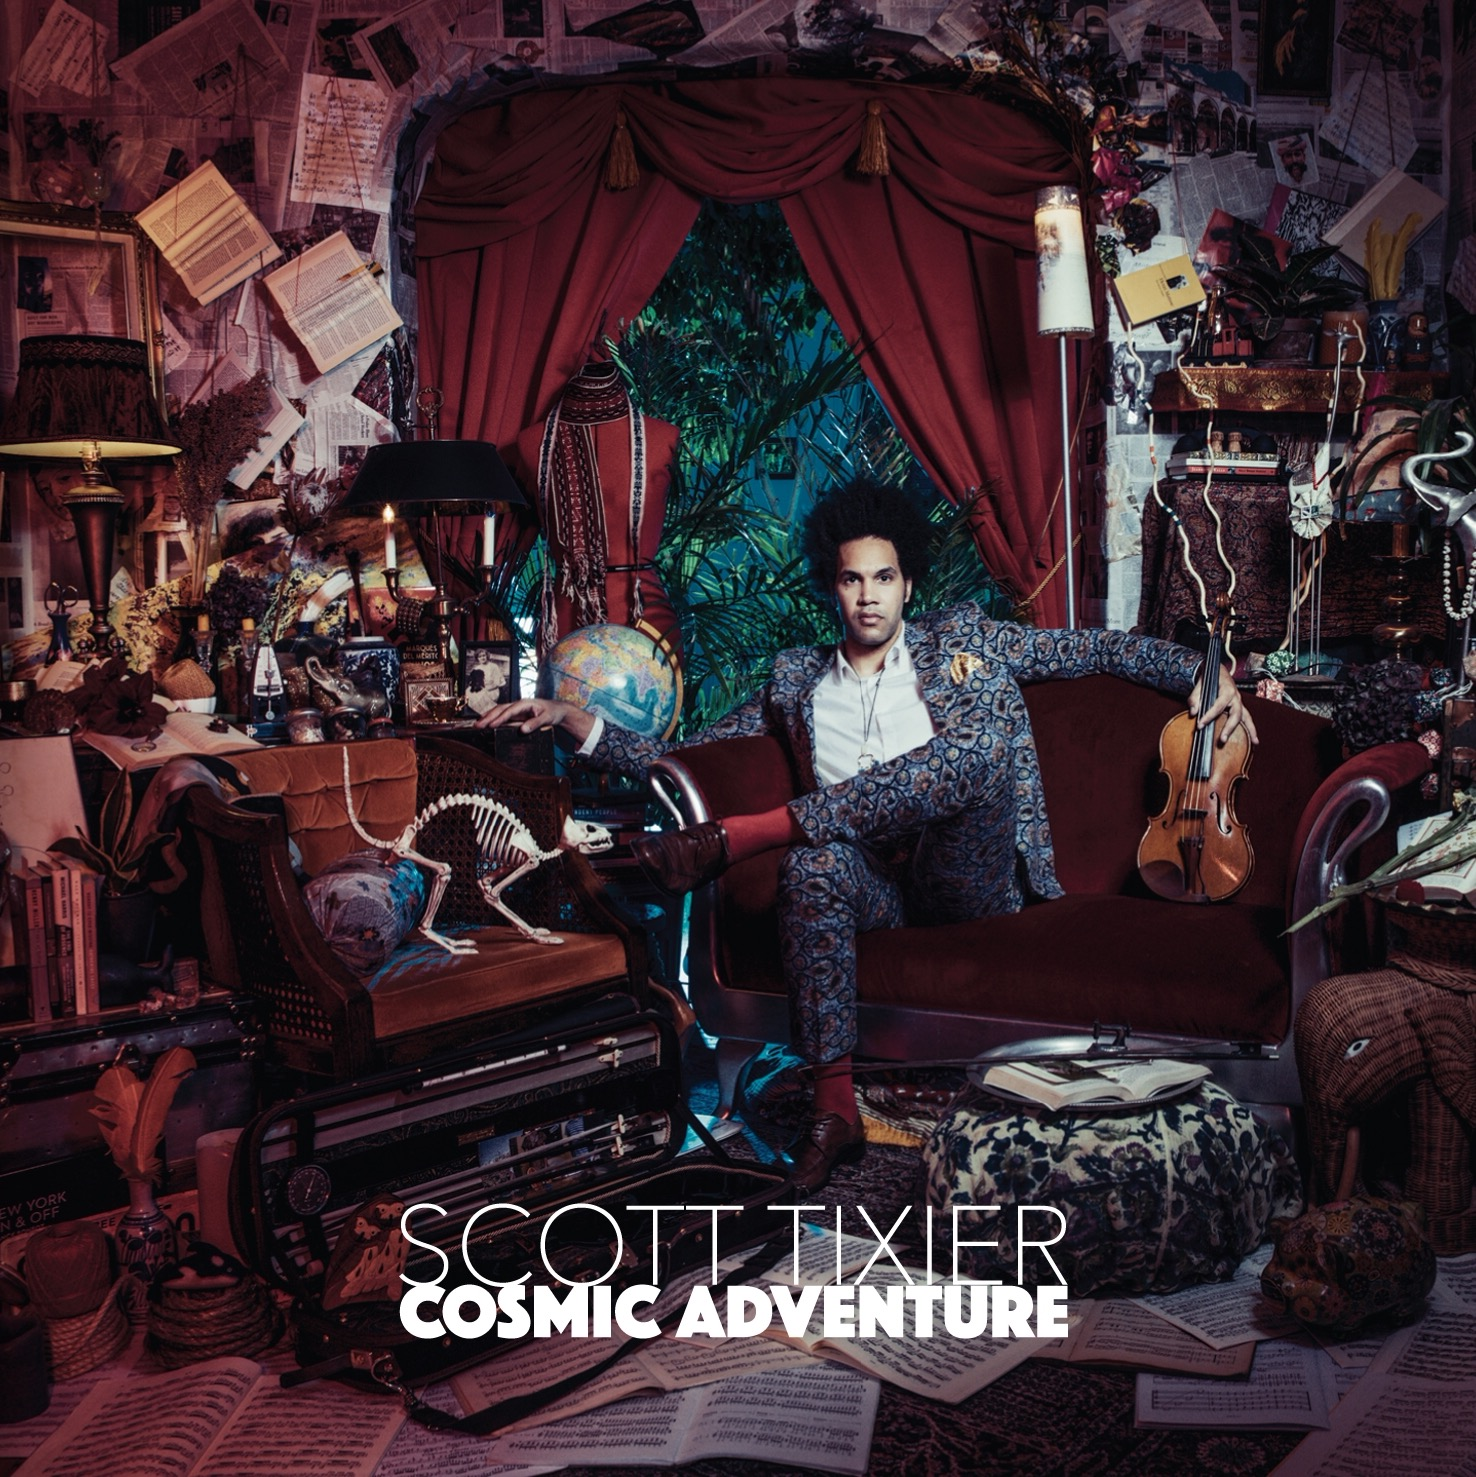 Ringer of the Week: Scott Tixier's 'Cosmic Adventure'